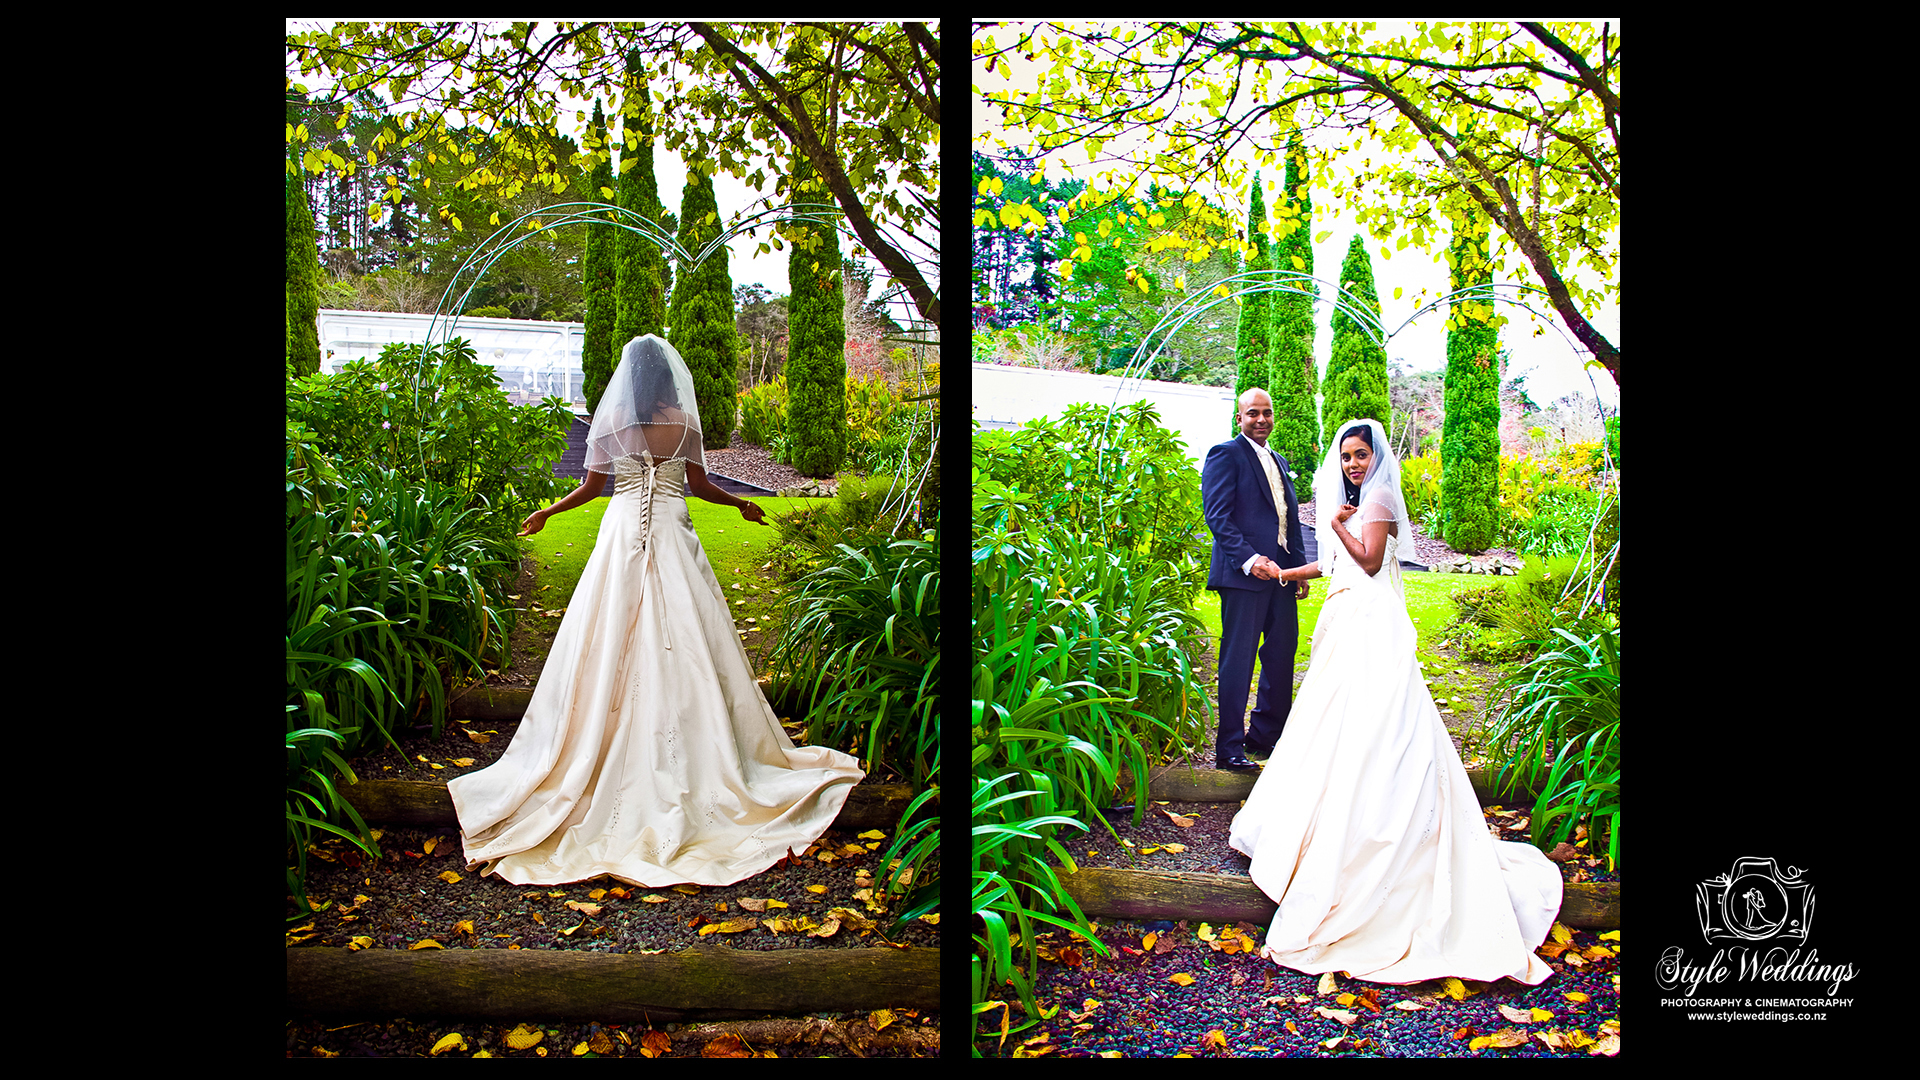 Bridal photoshoot by styleweddings.co.nz at Bridgewater country Estate Auckland